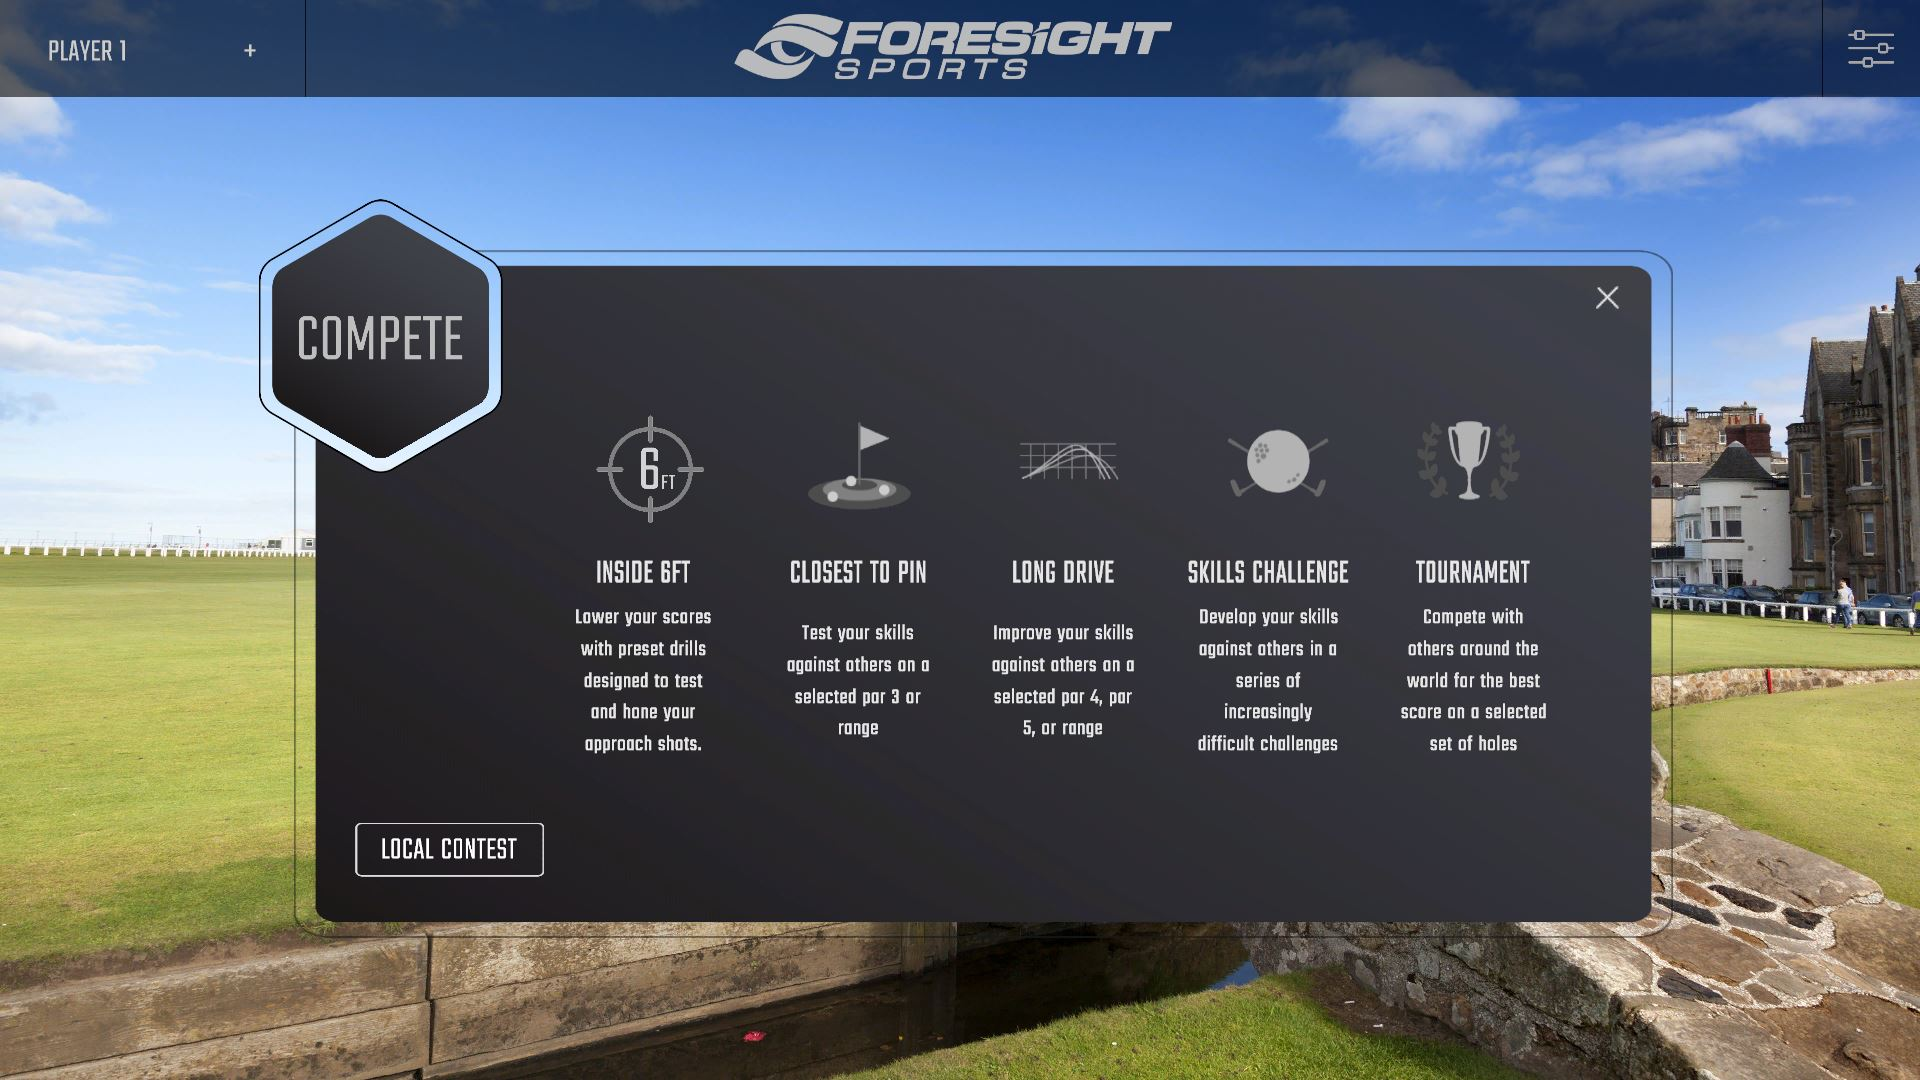 Inside Six Feet User Guide | Foresight Sports